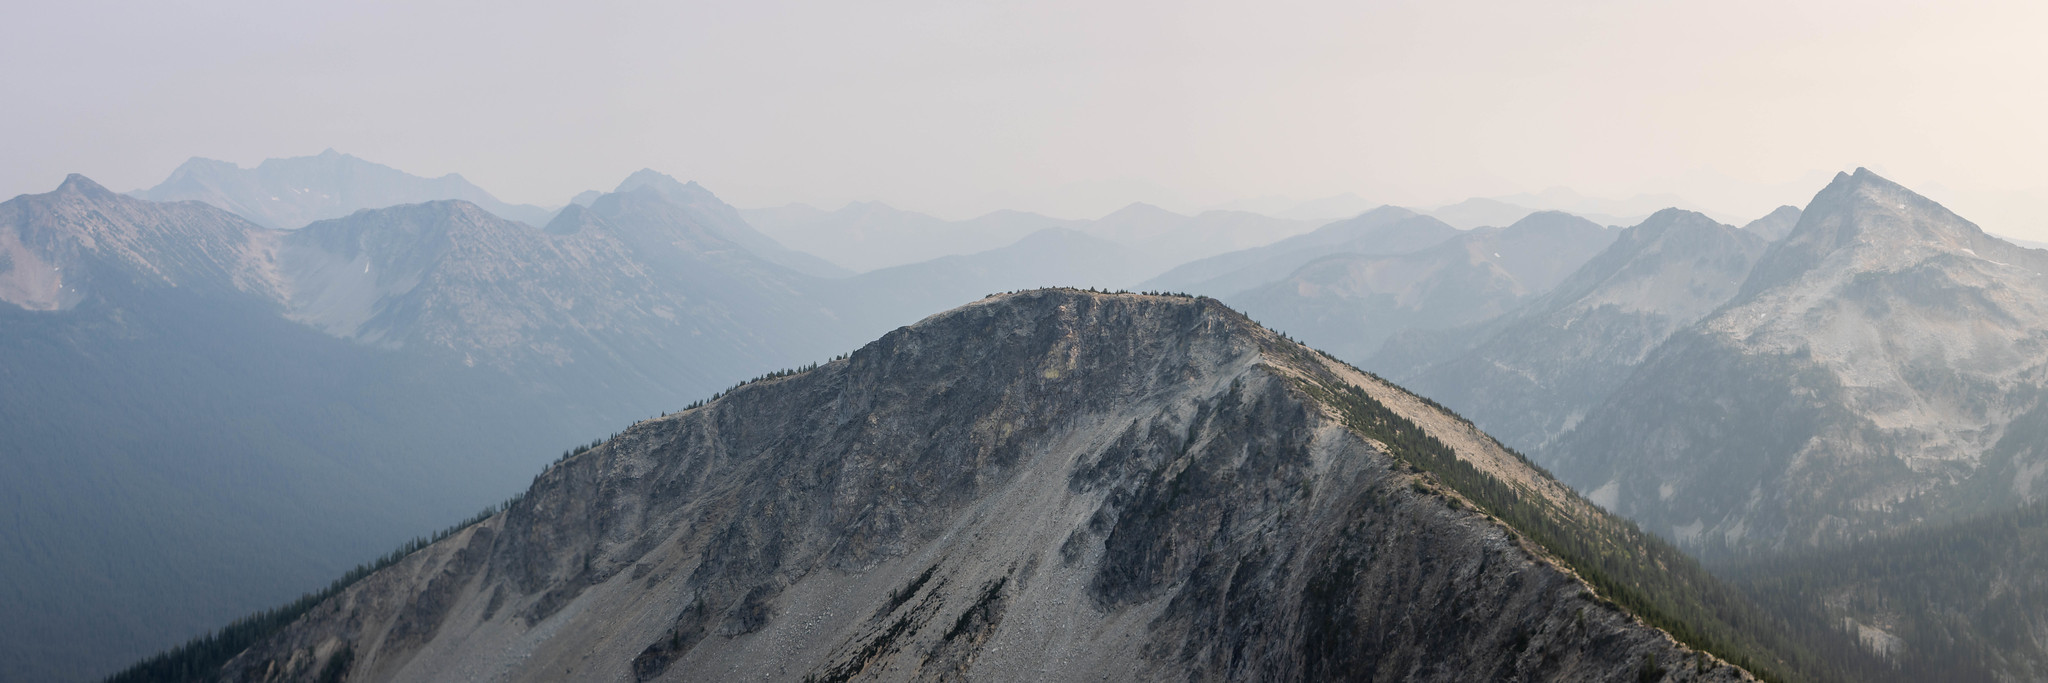 Southern panoramic view over Peak 7632